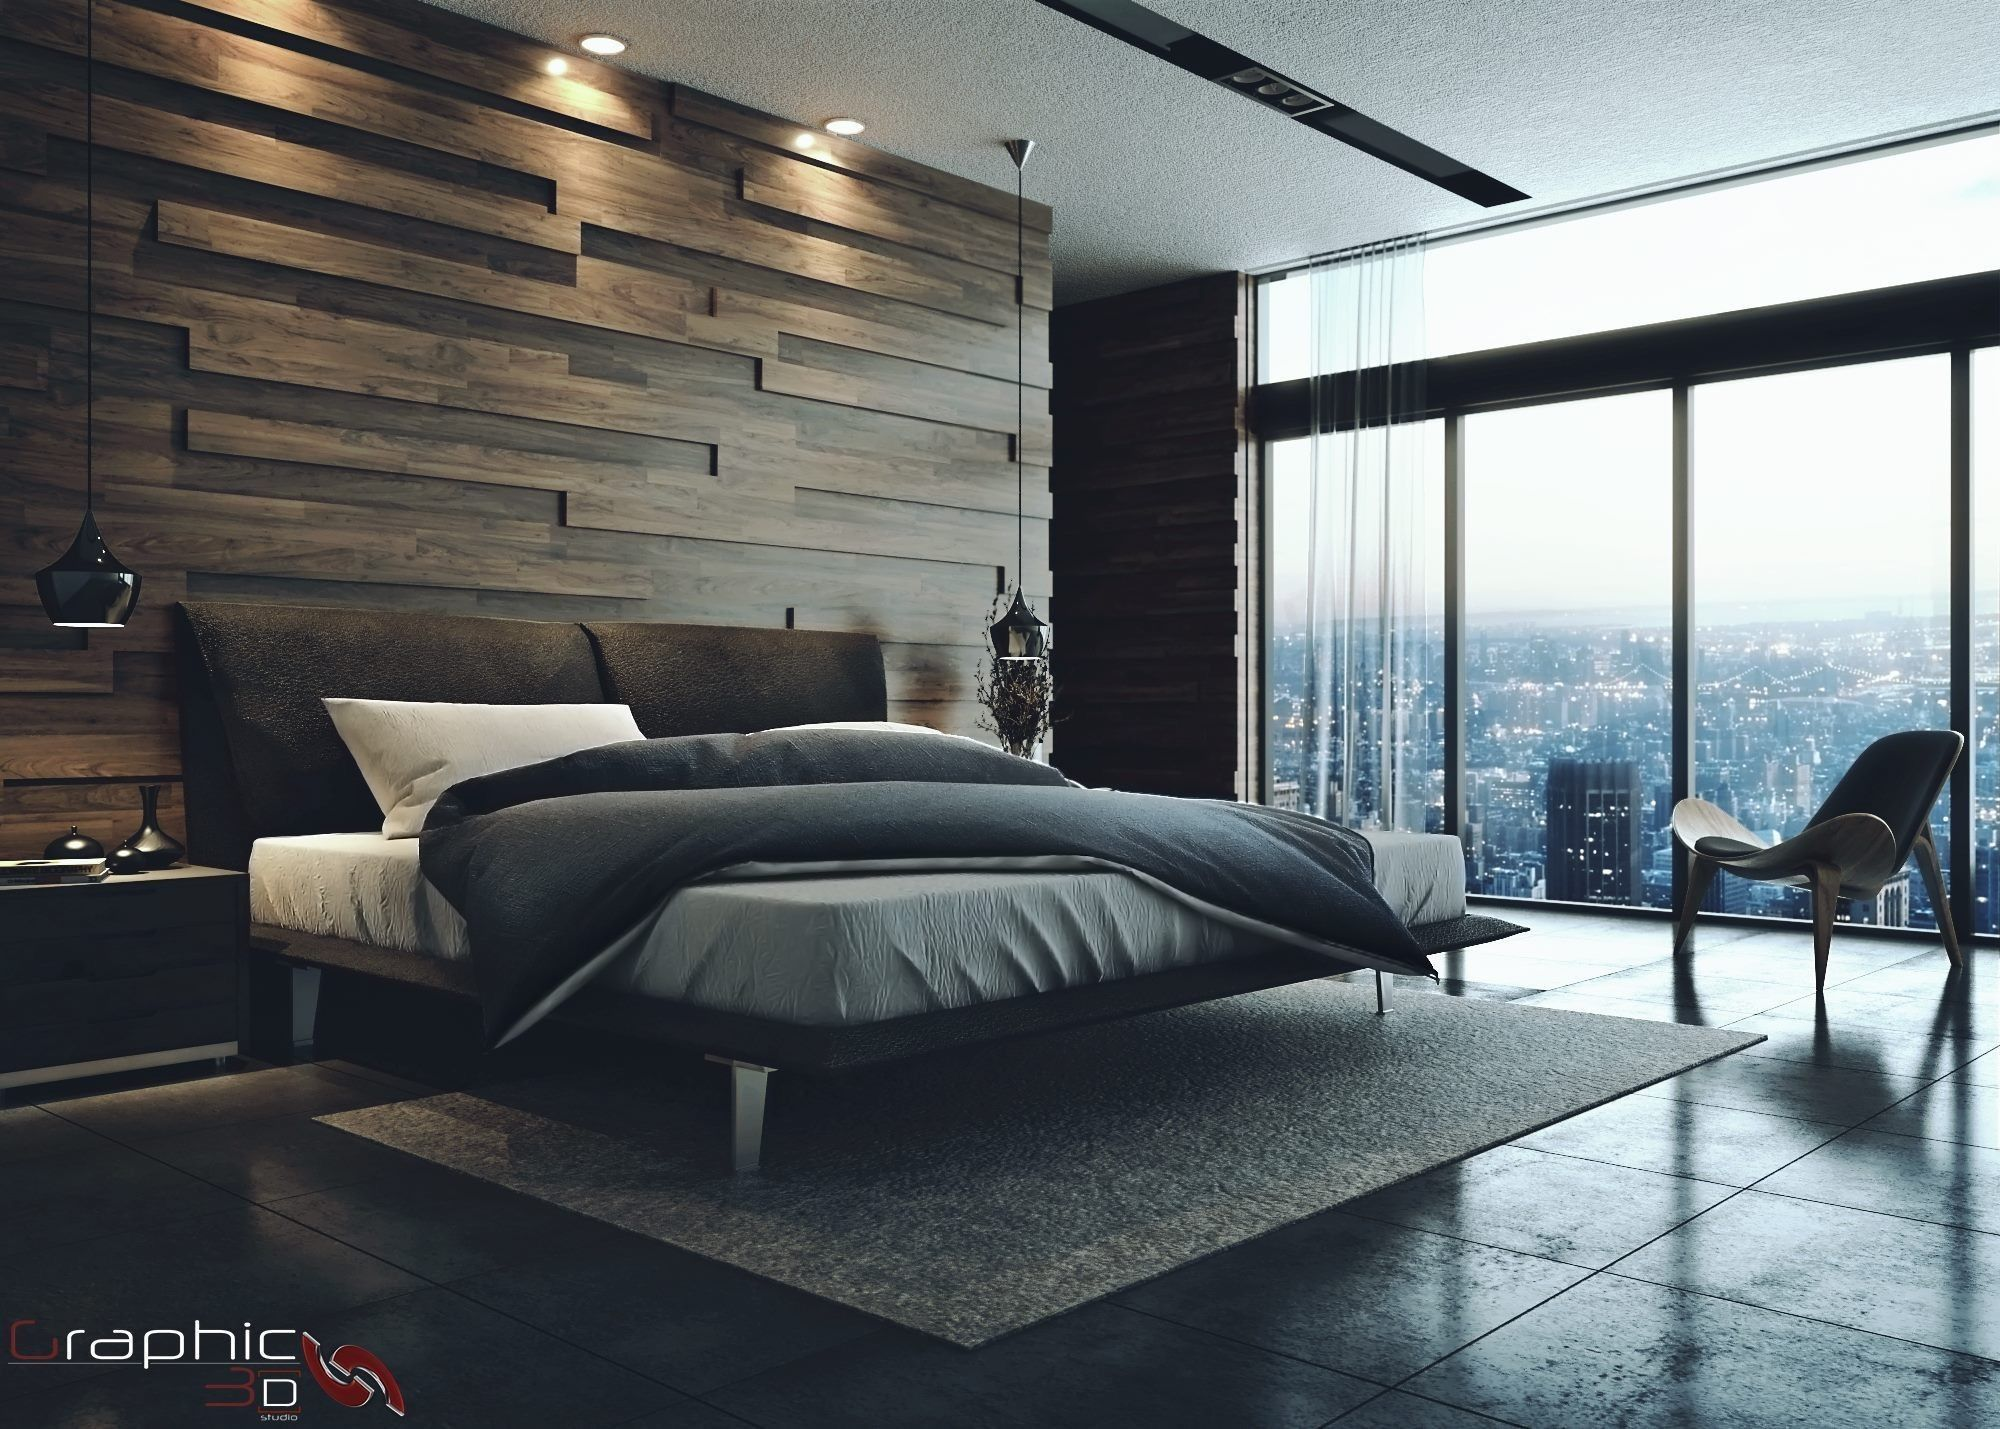 Pin By Yan Shuba On Home Decor Pinterest Luxurious Bedrooms